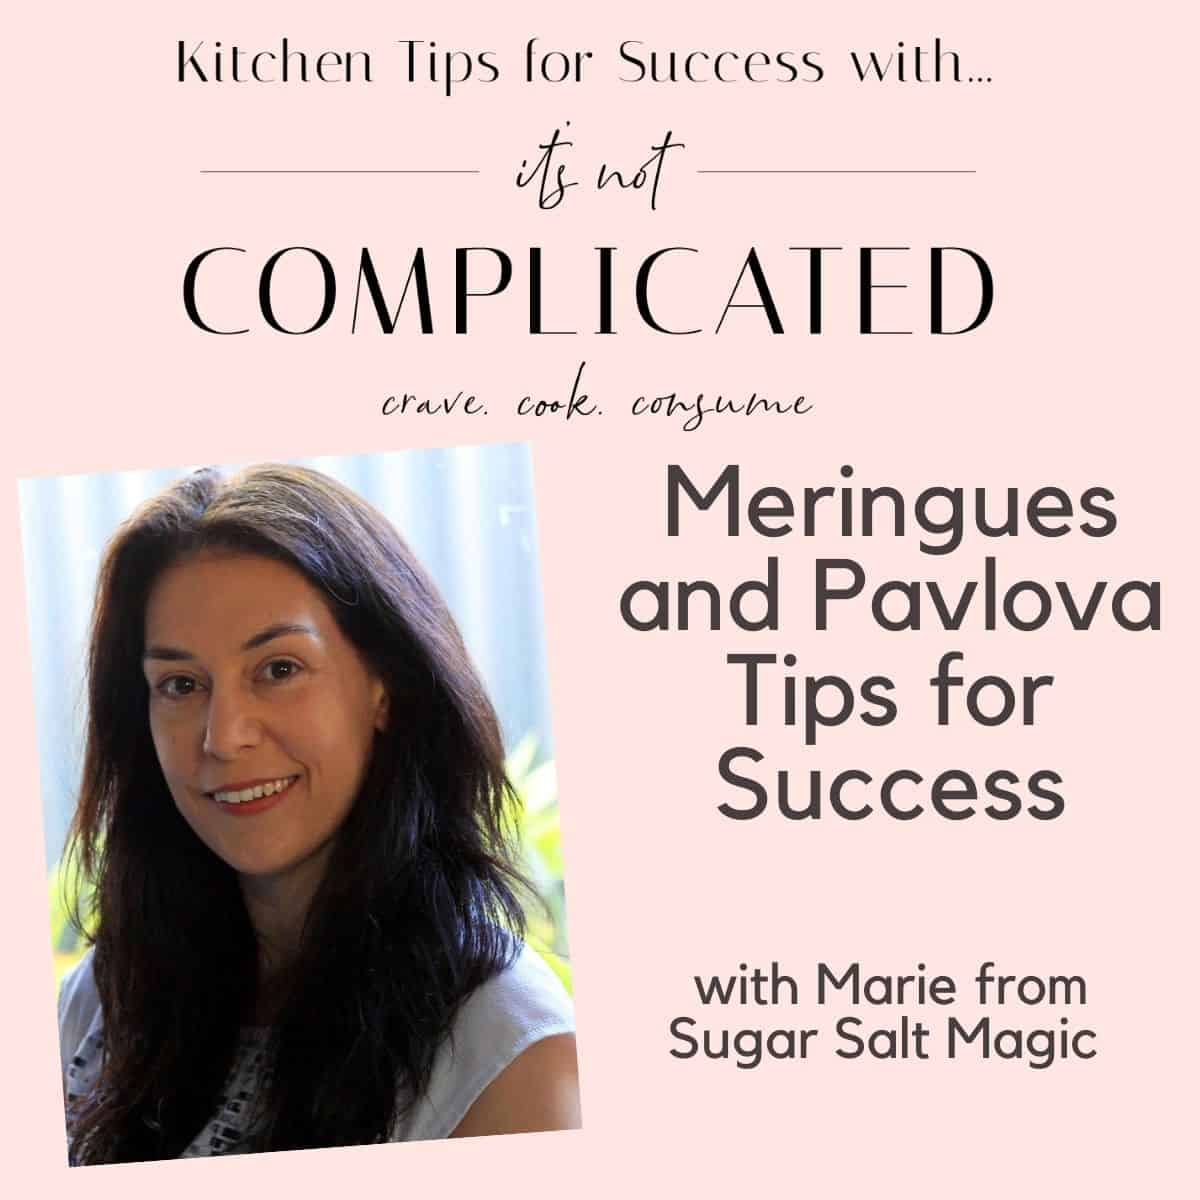 Kitchen Tips for Success Poster with Marie